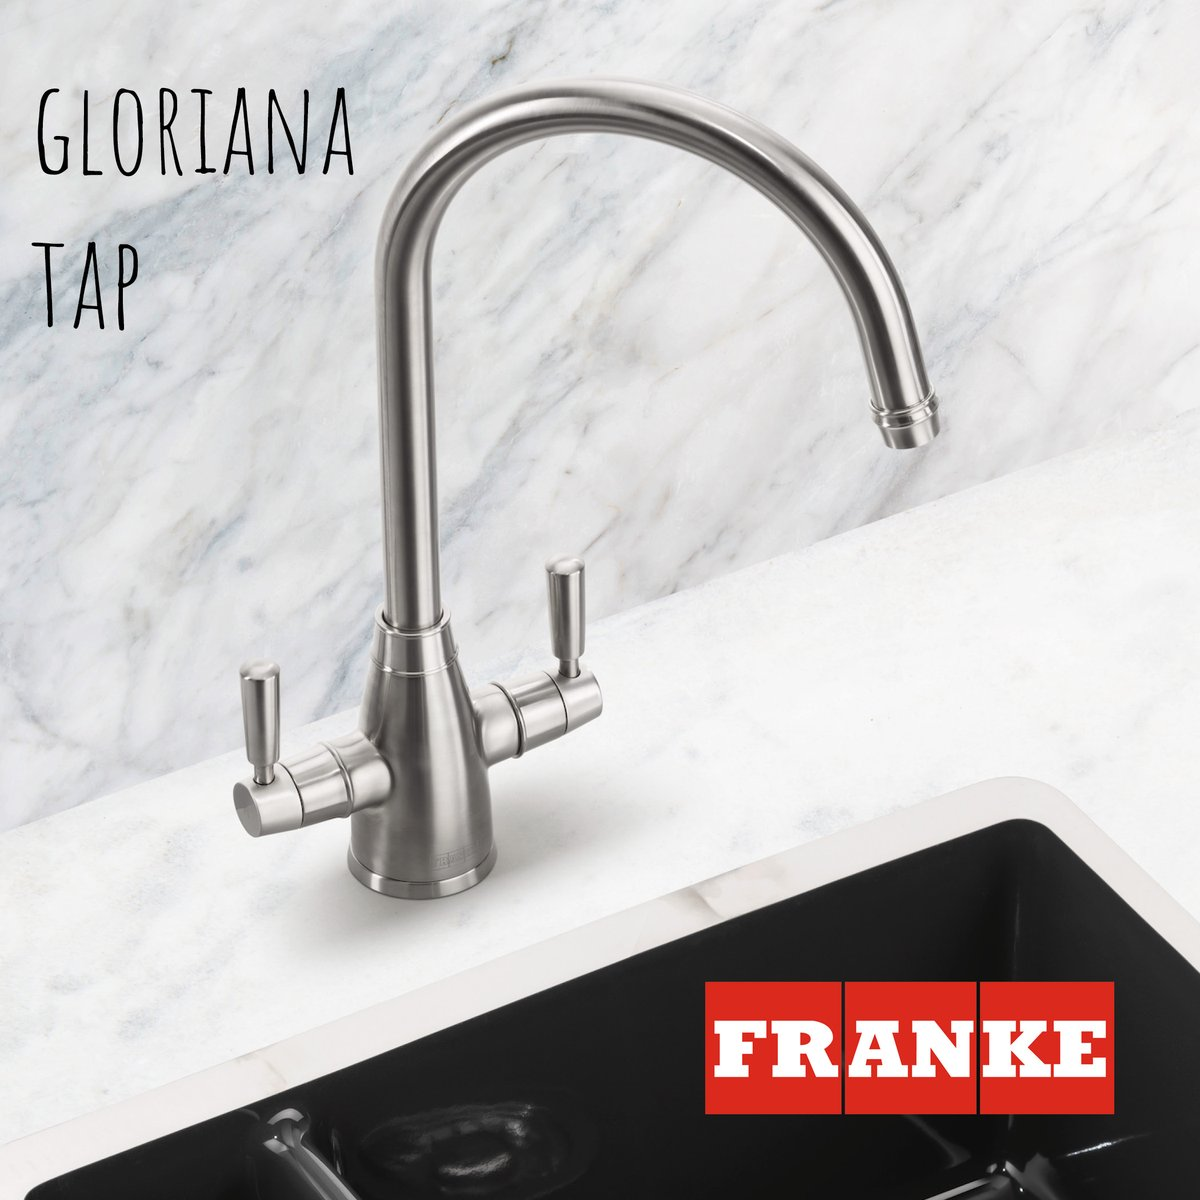 With its distinctive curved swan-neck, the new Gloriana tap combines a timeless, classic design with two chic and on-trend finishes to add an elegant touch to any traditional or contemporary kitchen. franke.com/content/corpor…